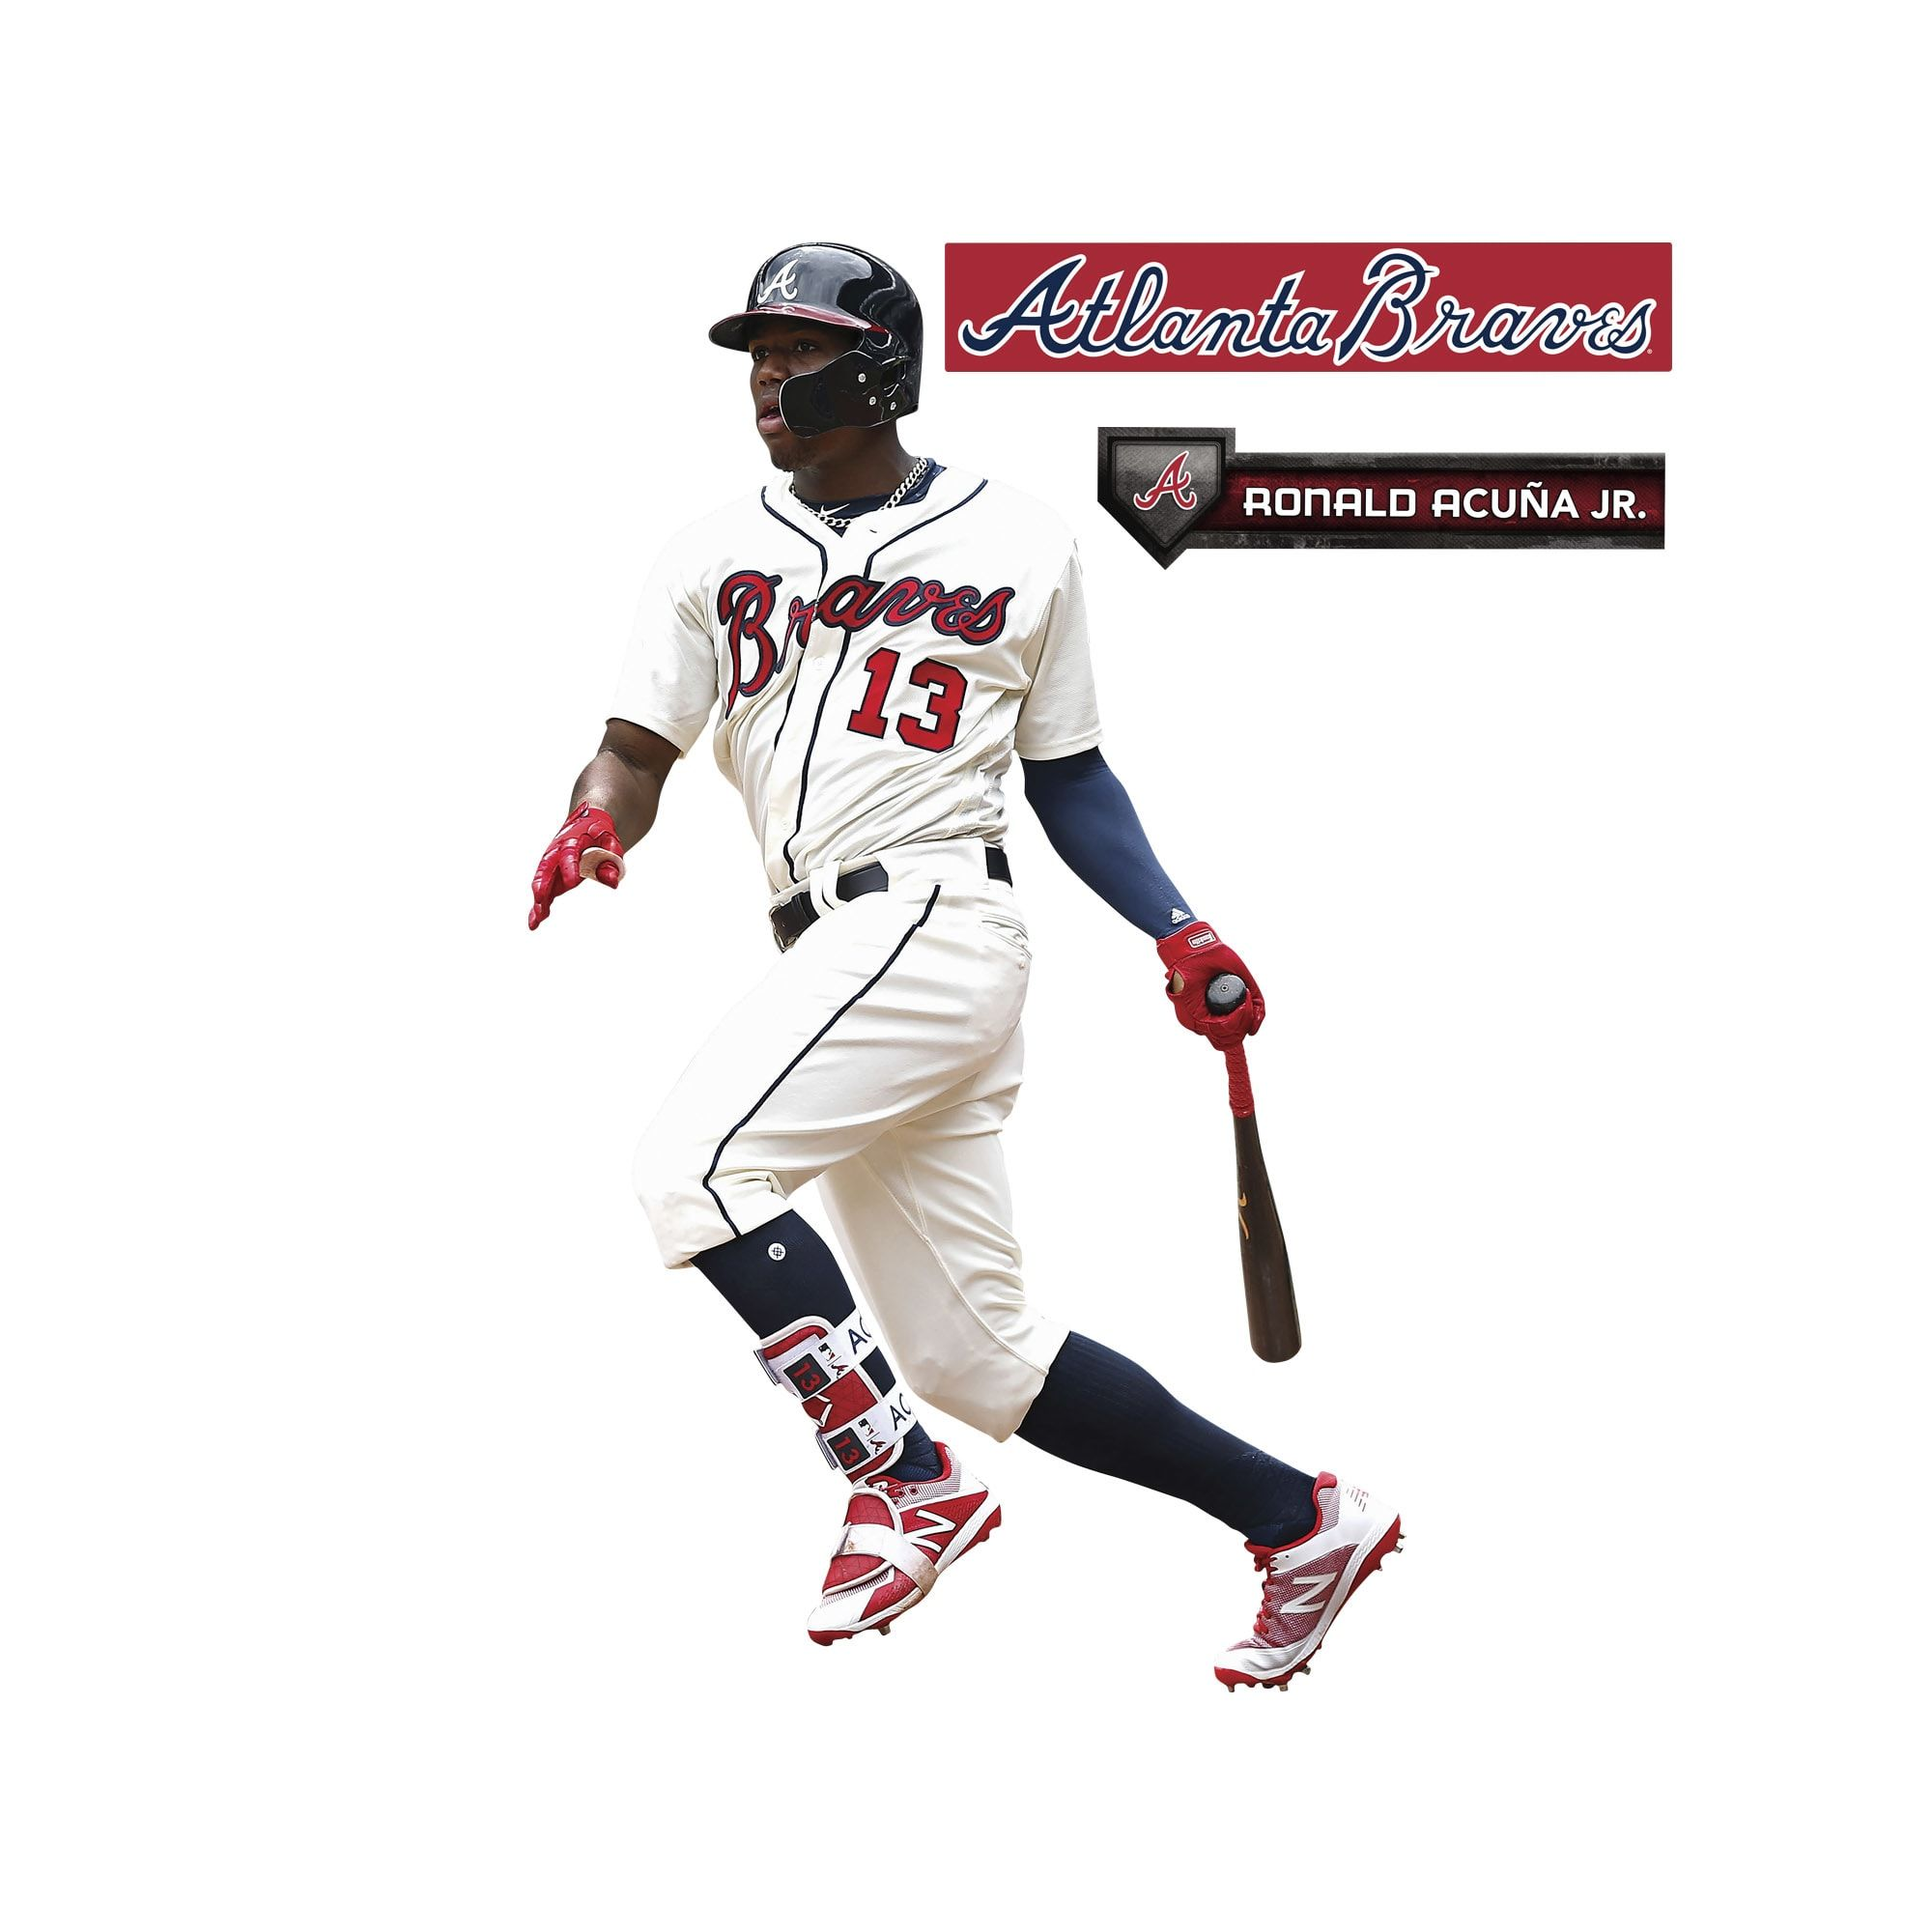 Ronald Acuna Jr Life Size Officially Licensed Mlb Removable